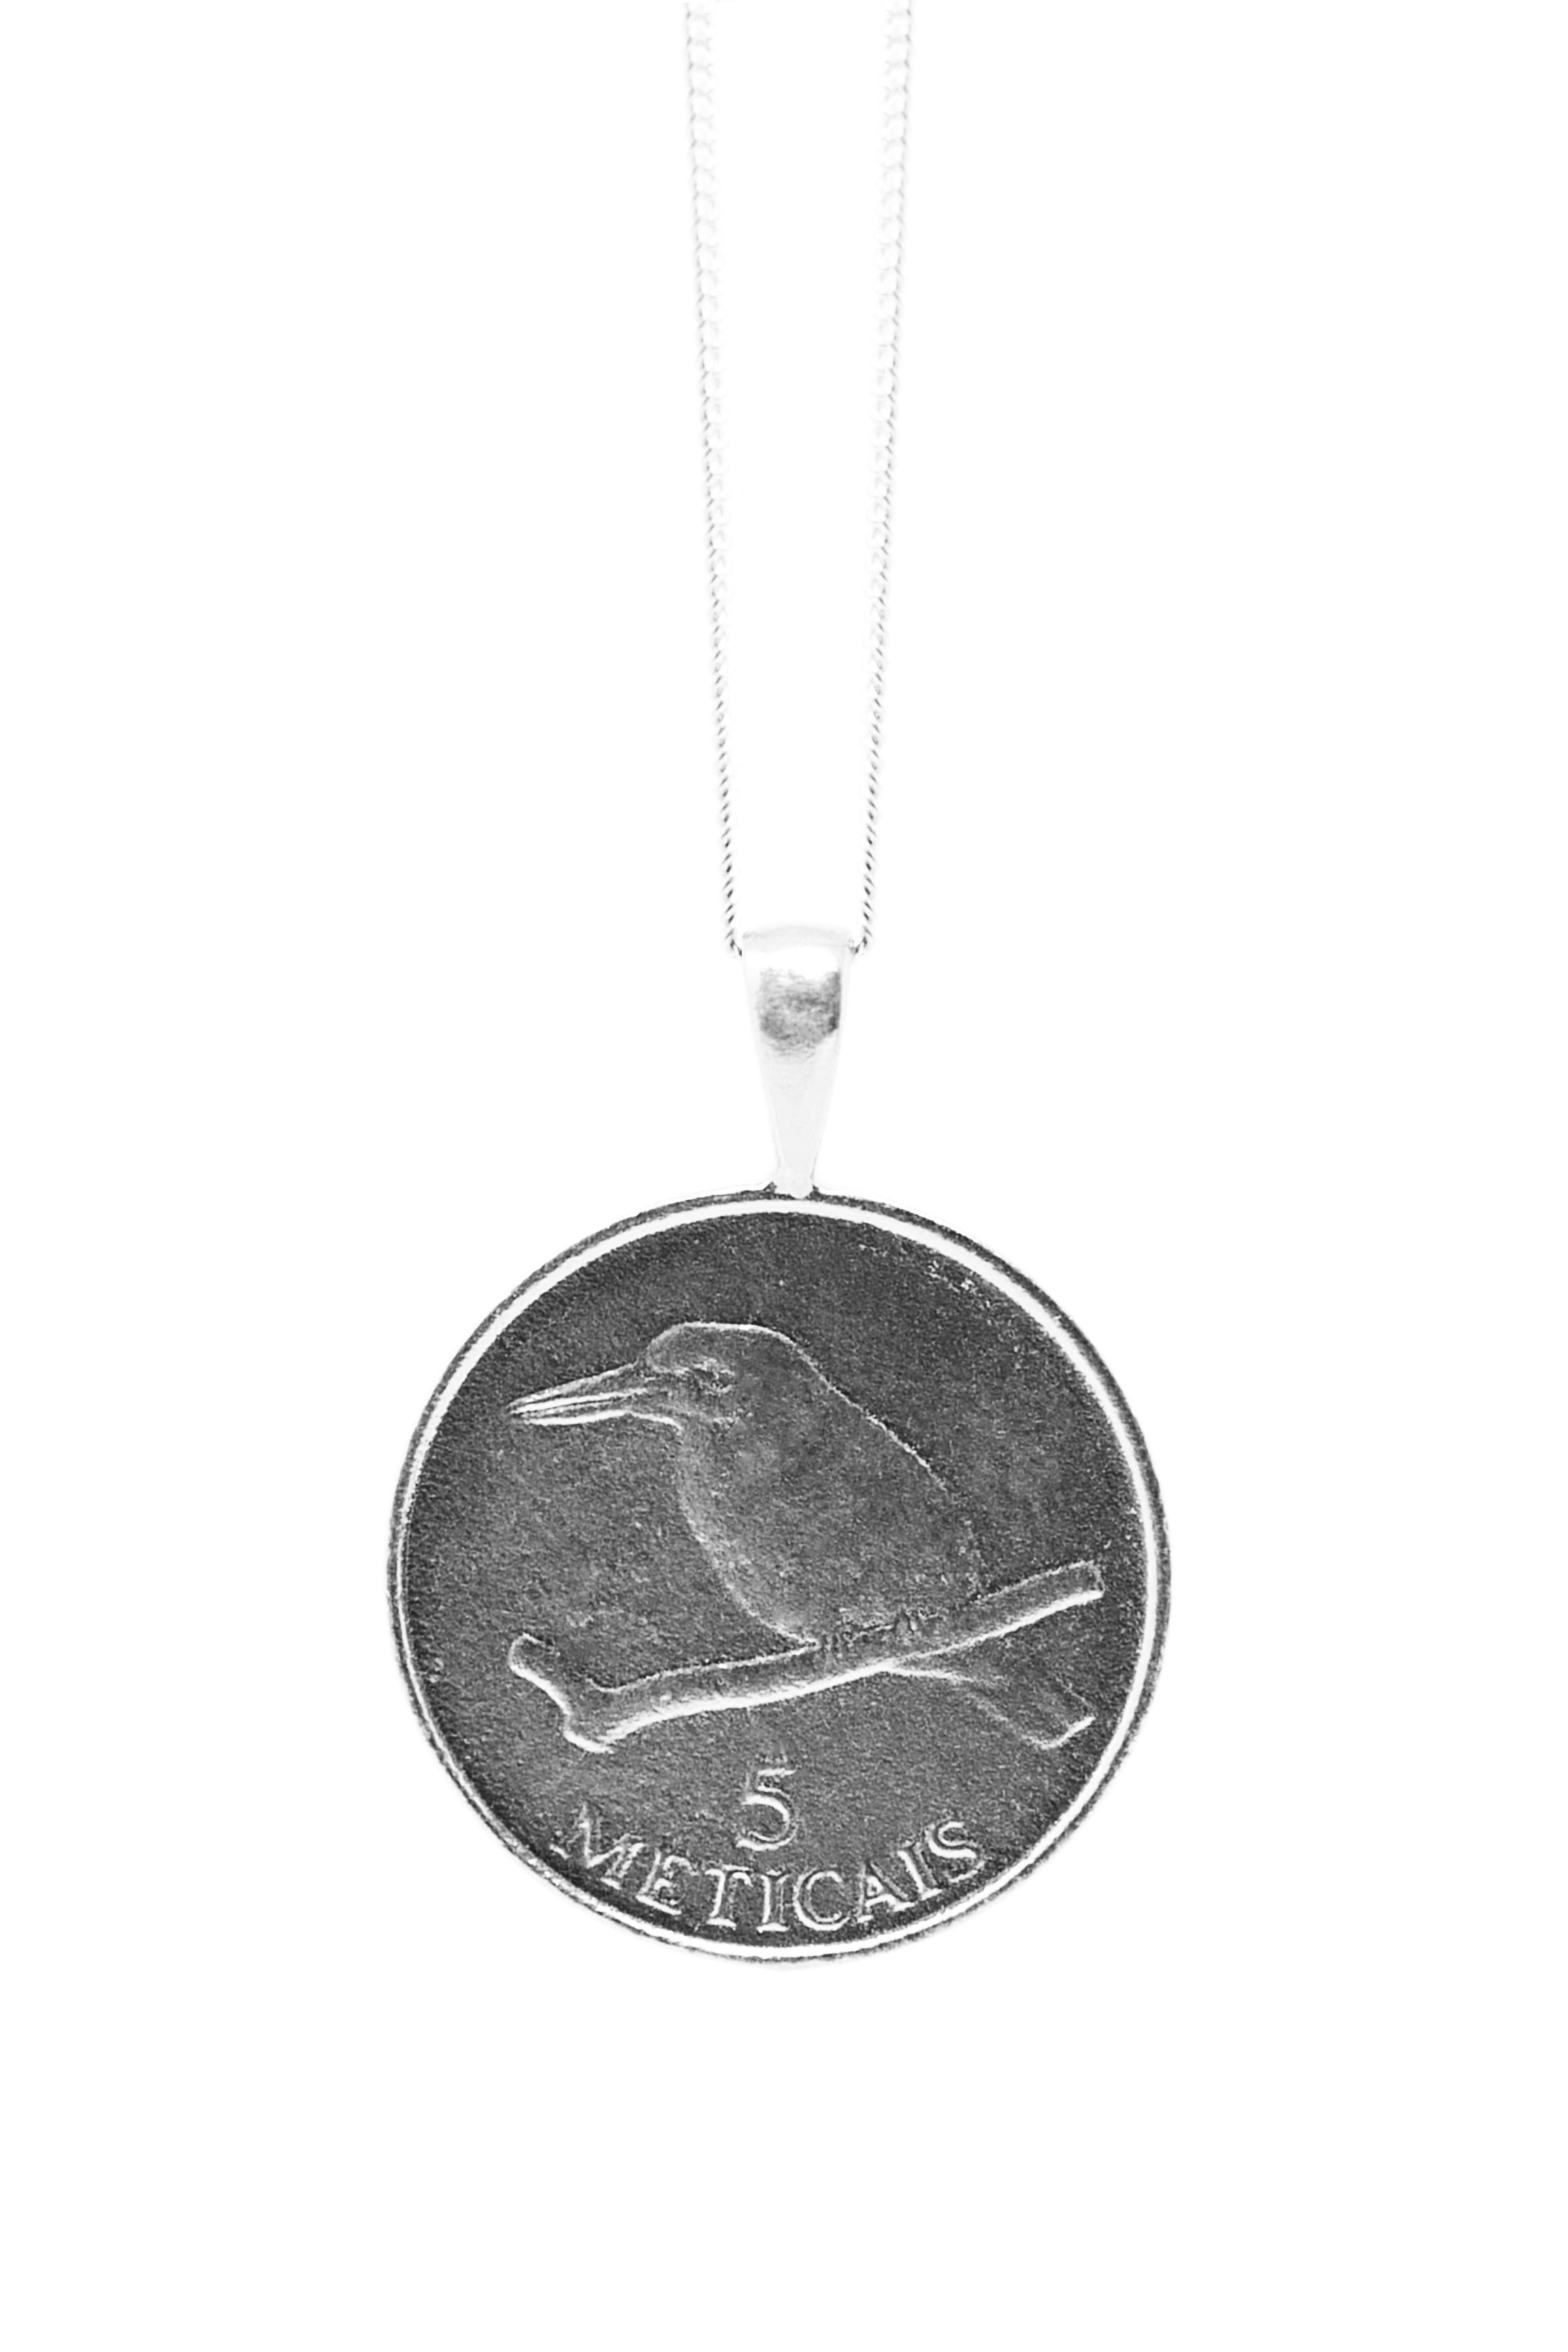 THE MOZAMBIQUE Coin Necklace